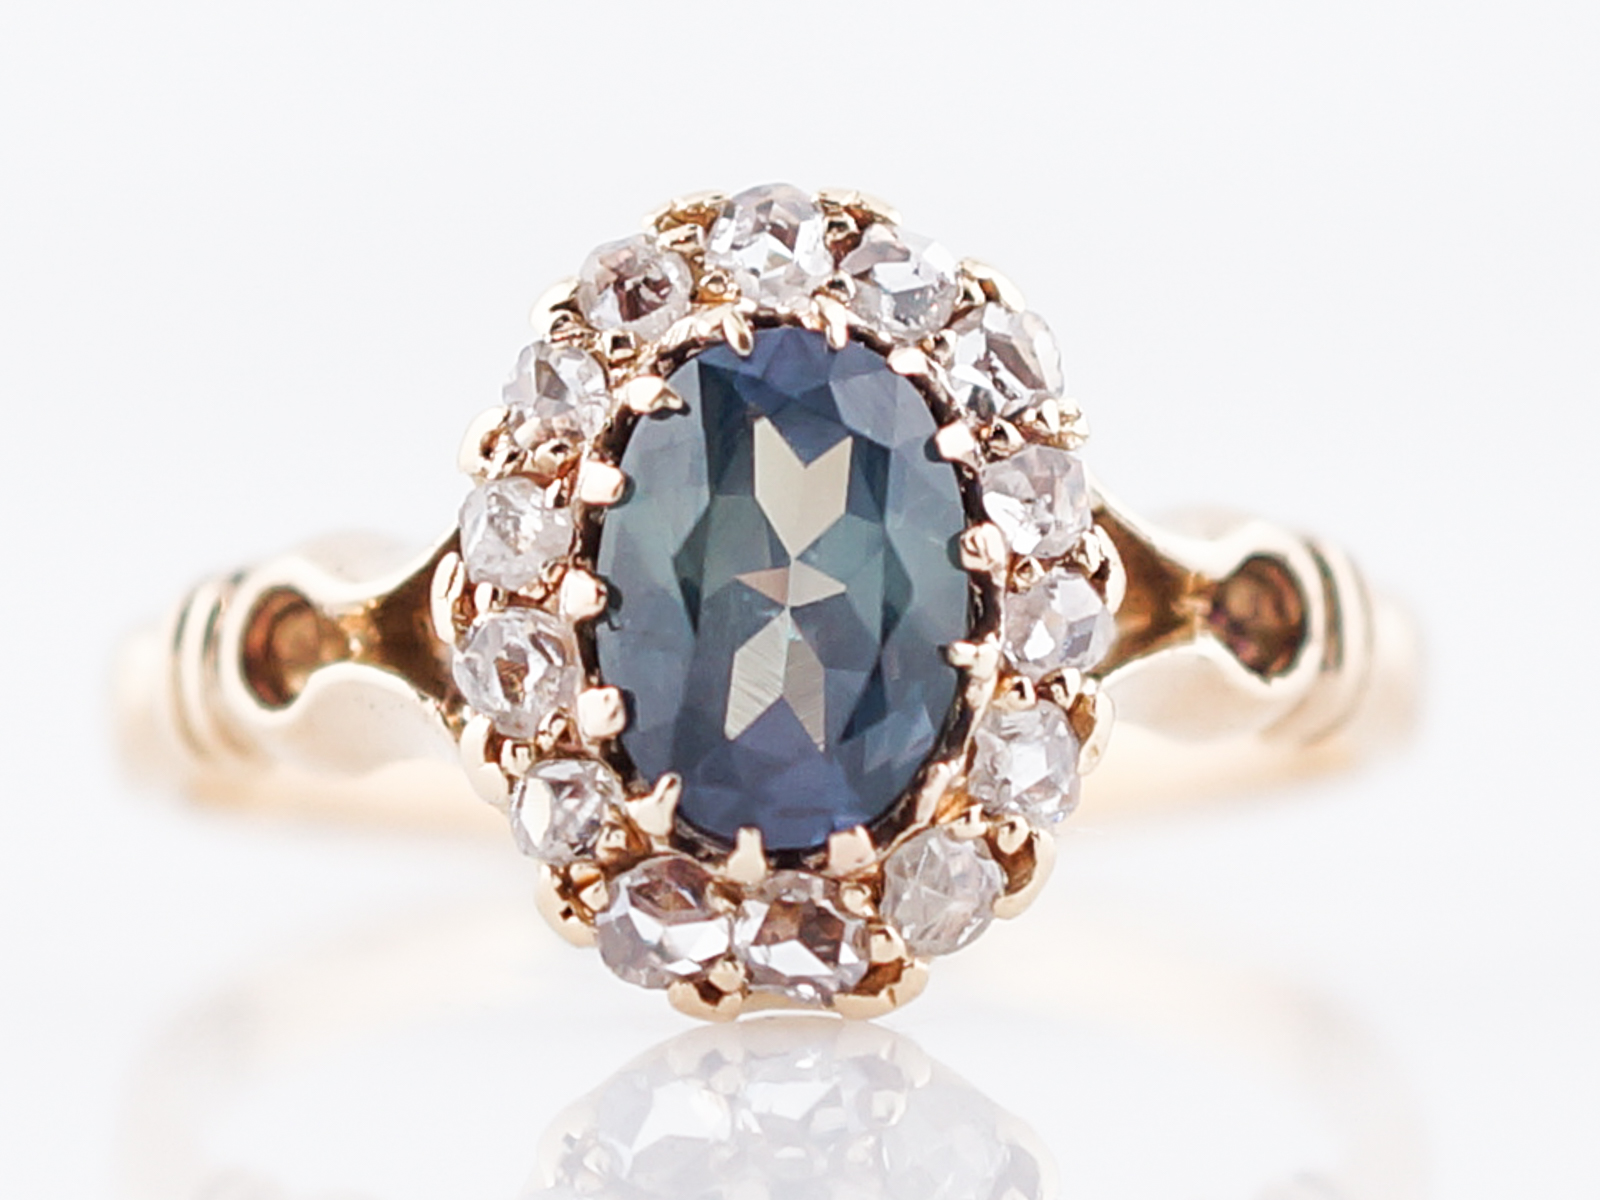 Antique Right Hand Rings New House Designs